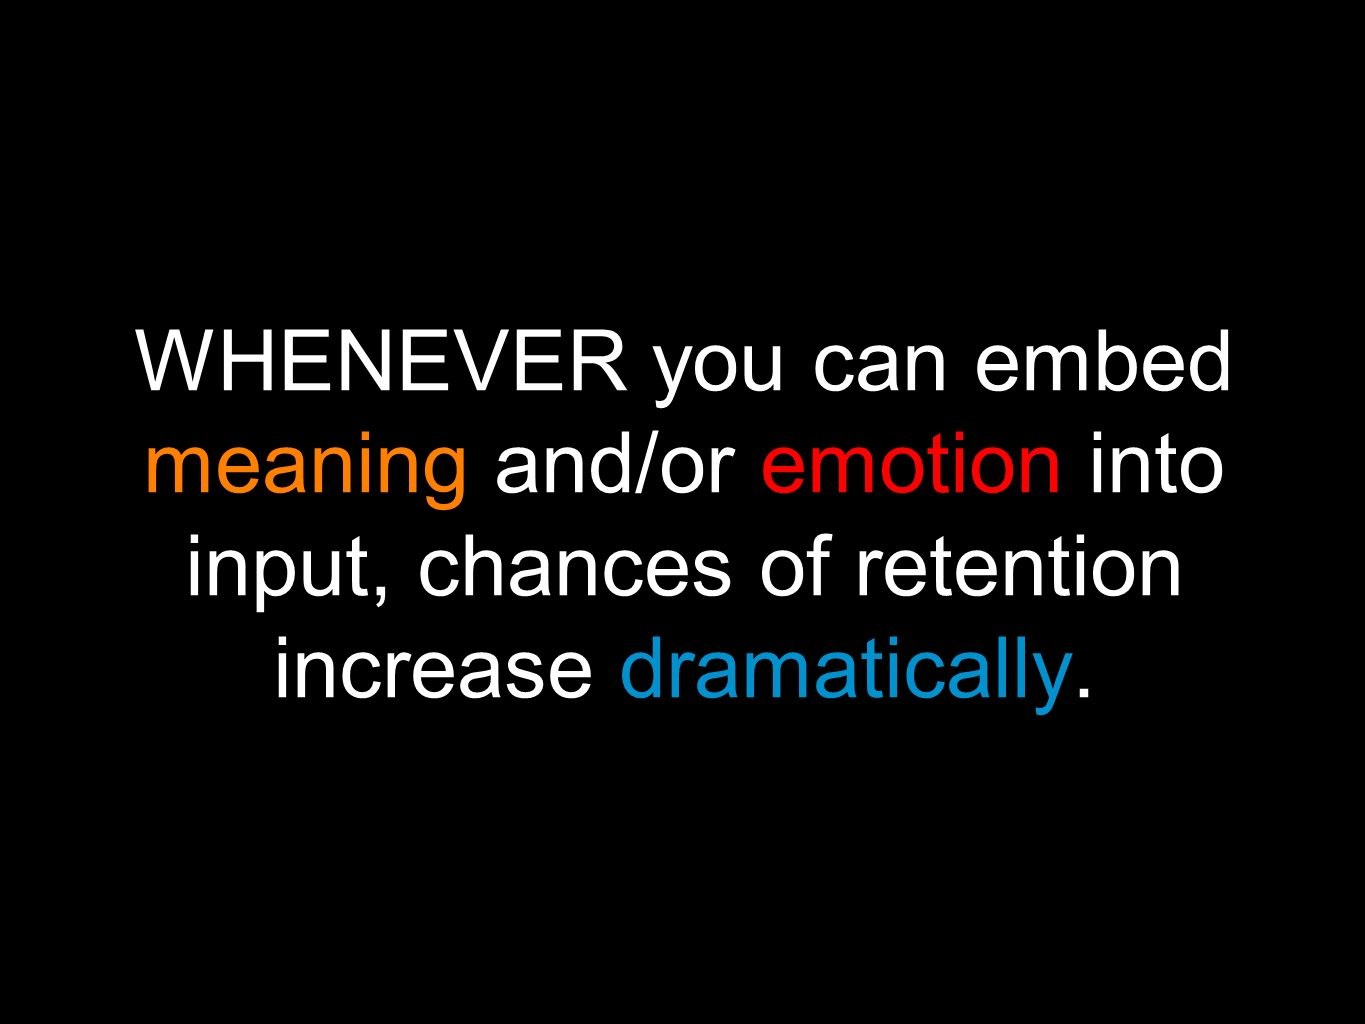 WHENEVER you can embed meaning and/or emotion into input, chances of retention increase dramatically.